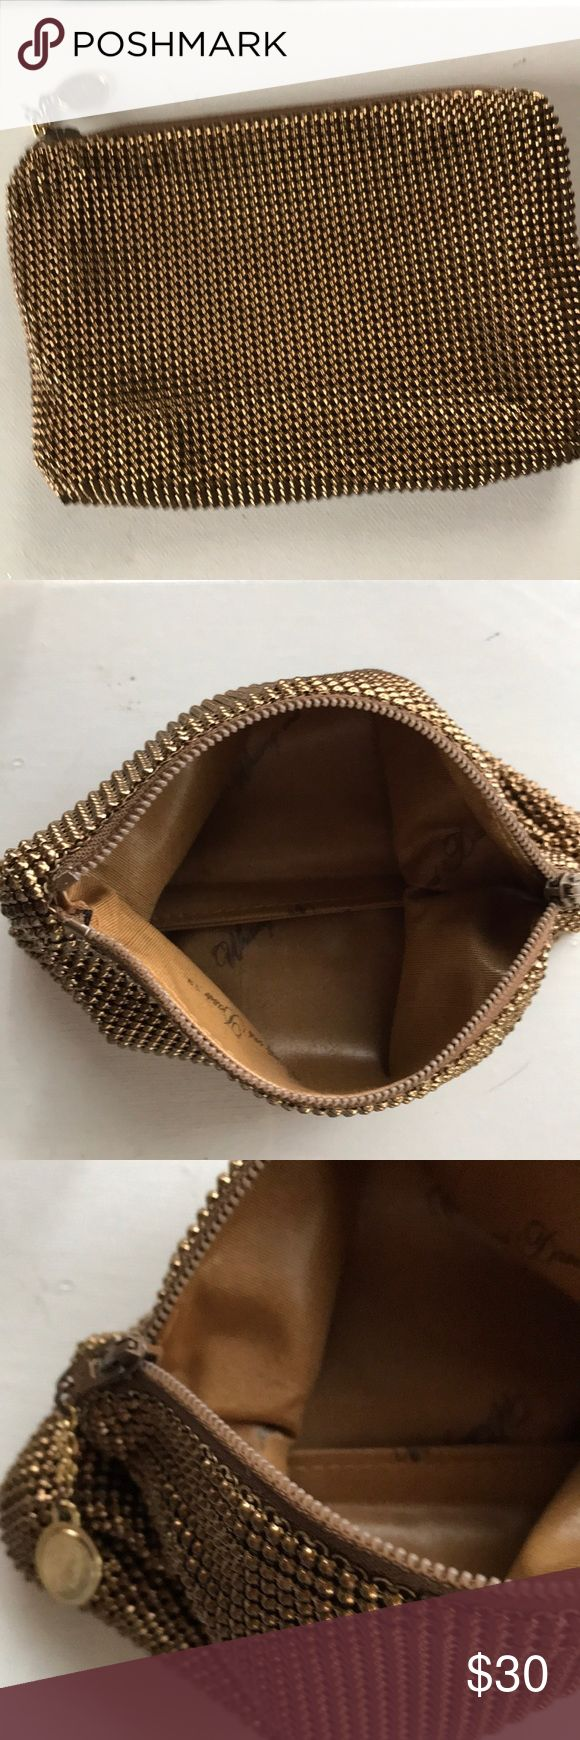 "Vintage Whitney and Davis Mini Cocktail/Coin Elegant and timeless vintage gold metal mesh cocktail purse/coin which feels smooth and sleek Measures 6 1/2"" x 4 1/3"" Gold lining inside with no rips or tears Great condition Whitney and Davis Bags Mini Bags"